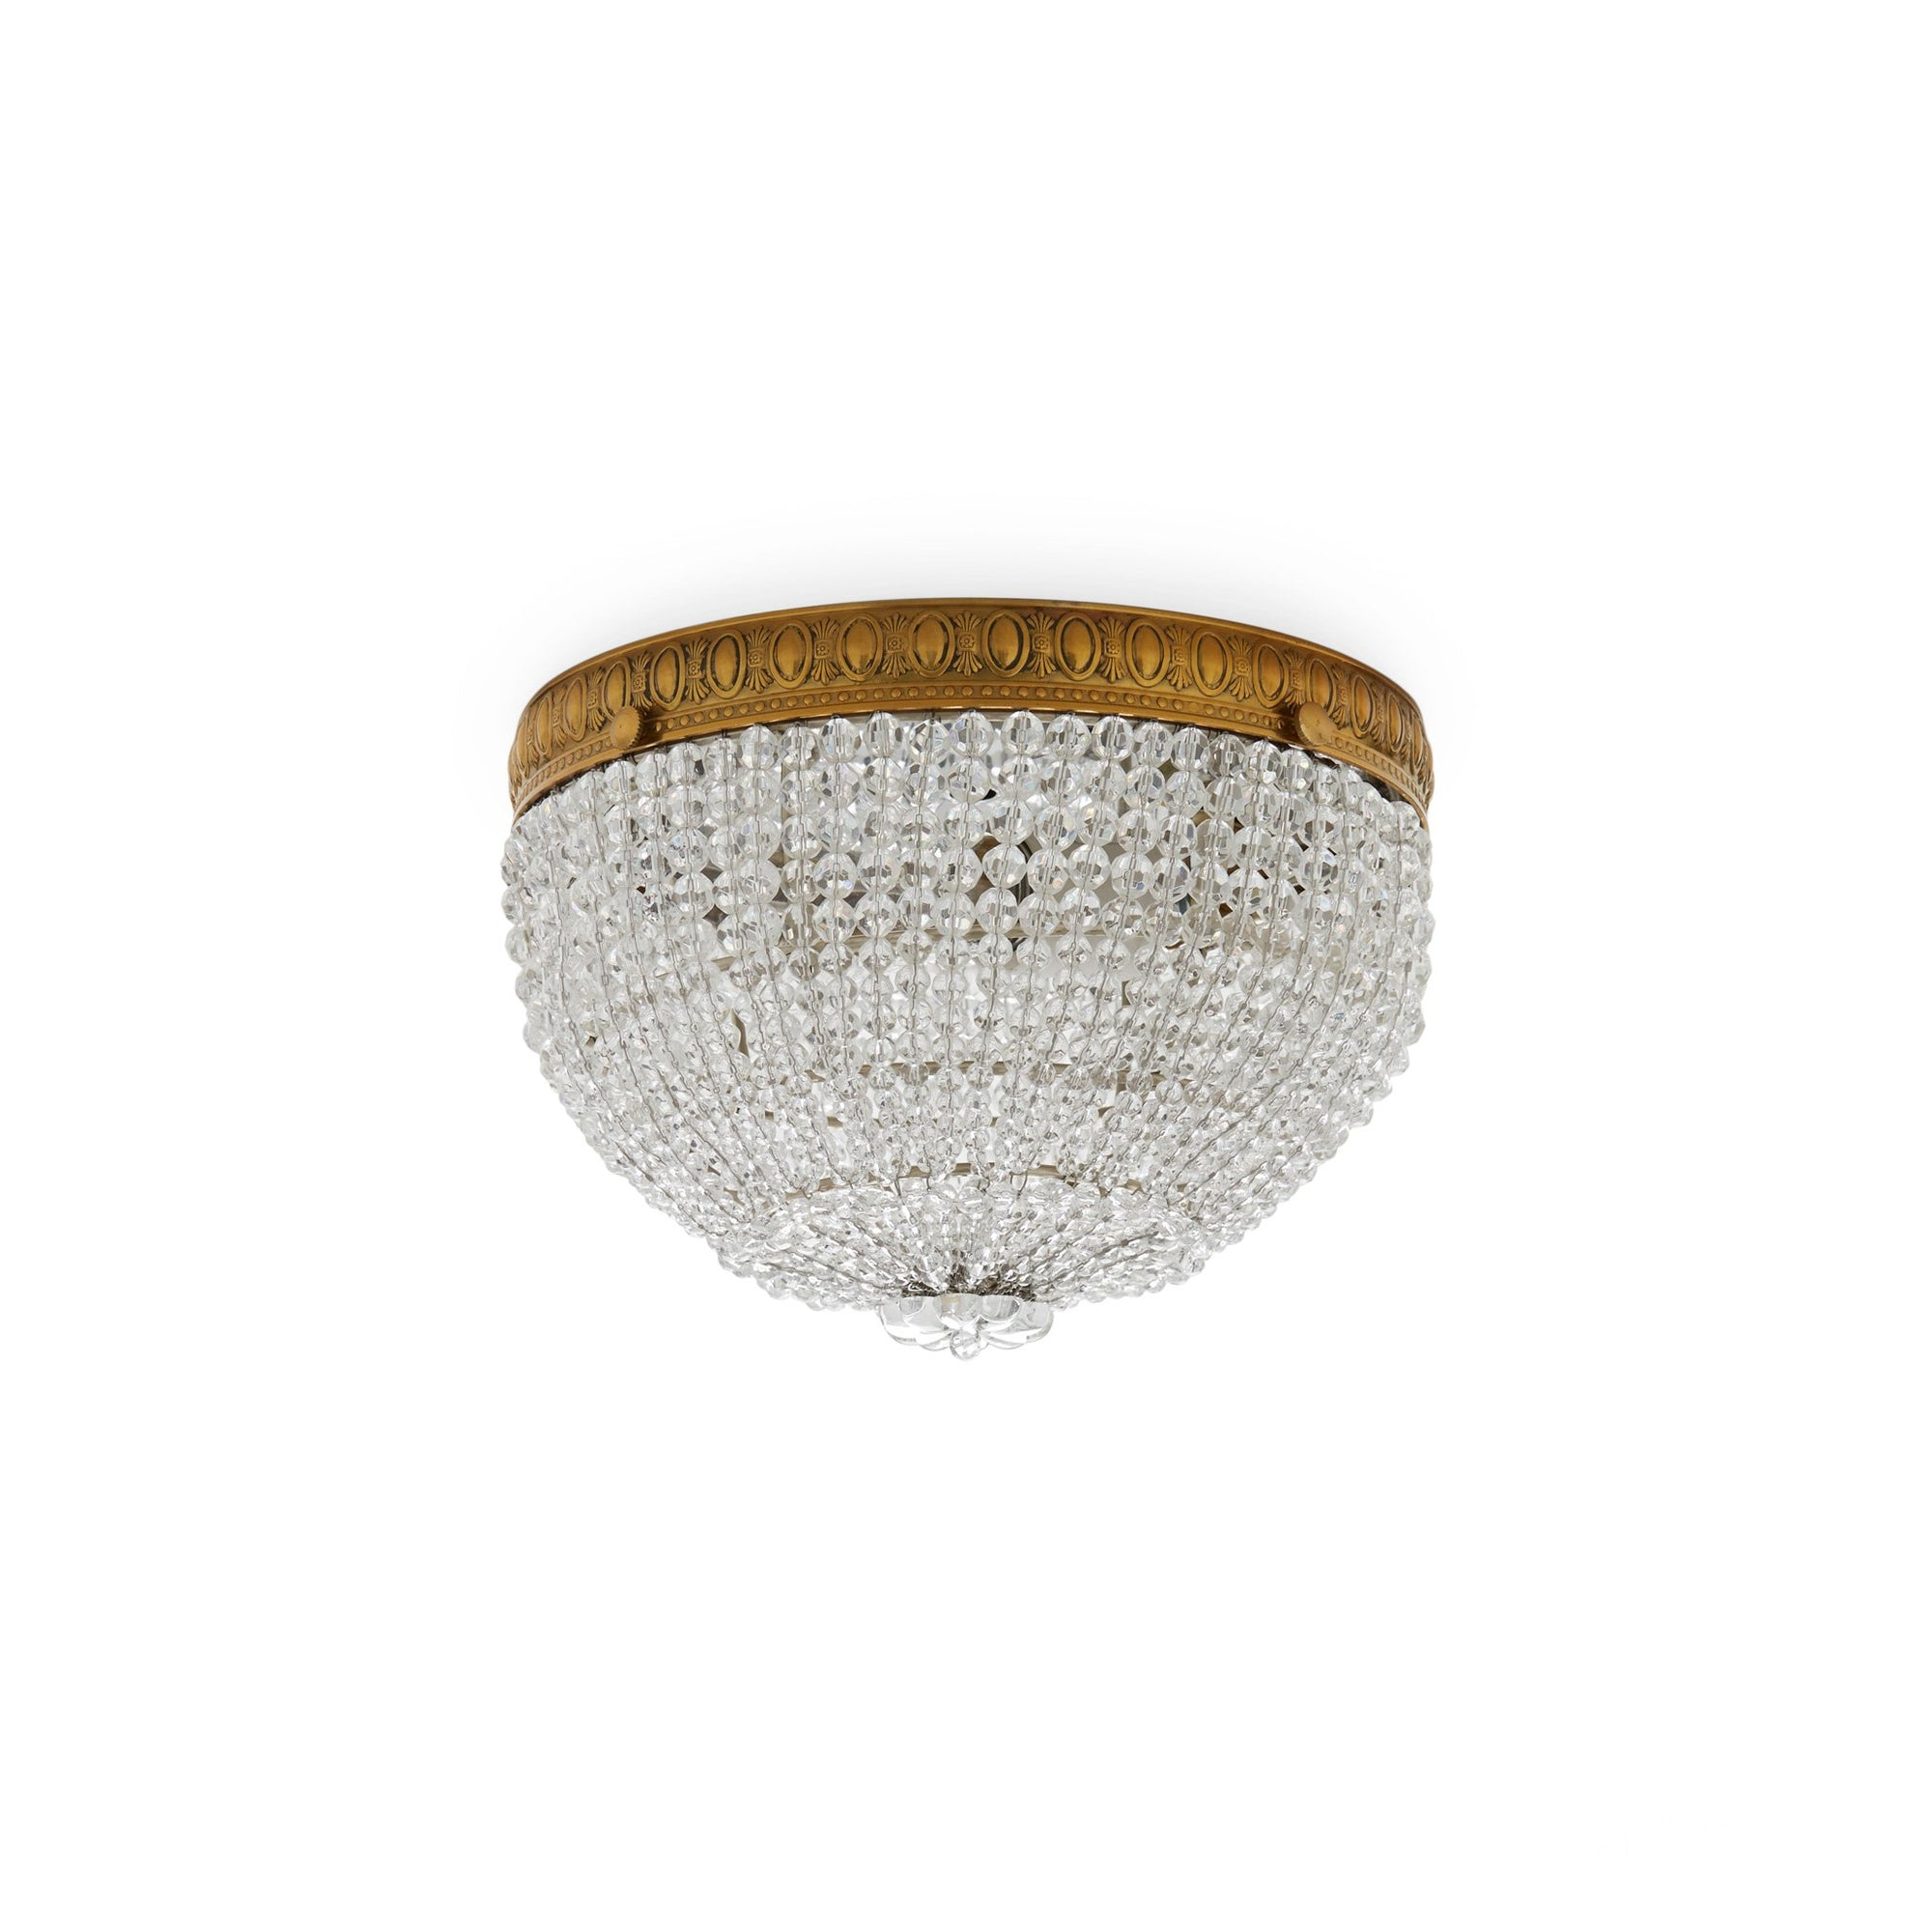 7108-G Sherle Wagner International Round Crystal Beaded Ceiling Light Light 8 inches in French Gold